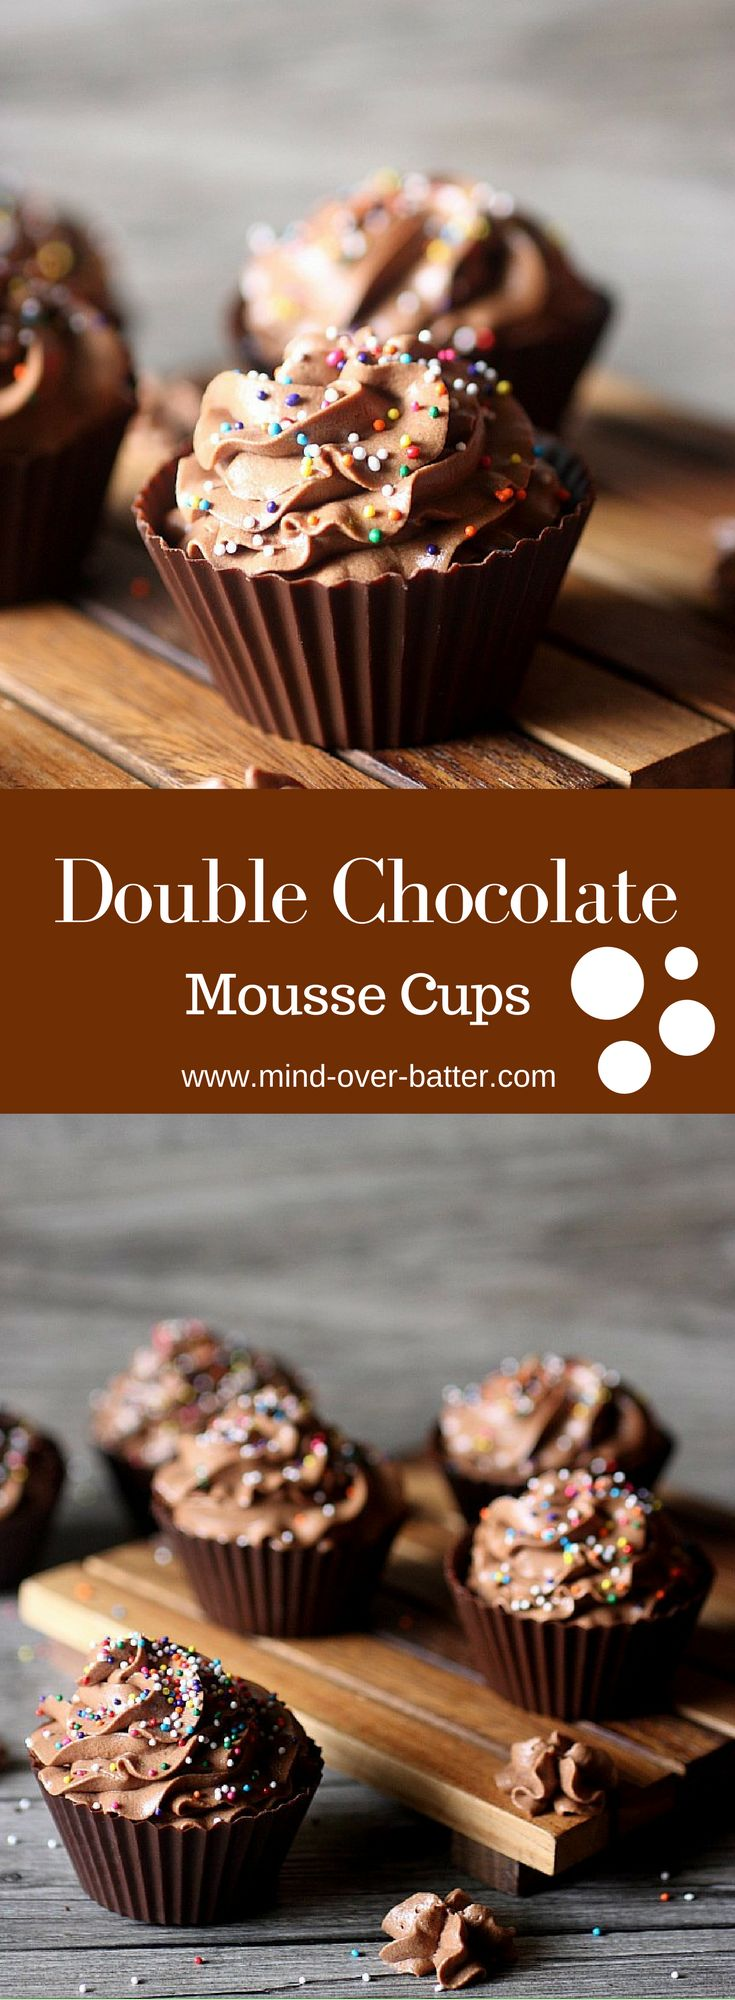 Double Chocolate Mousse Cups www-mind-over-batter.com